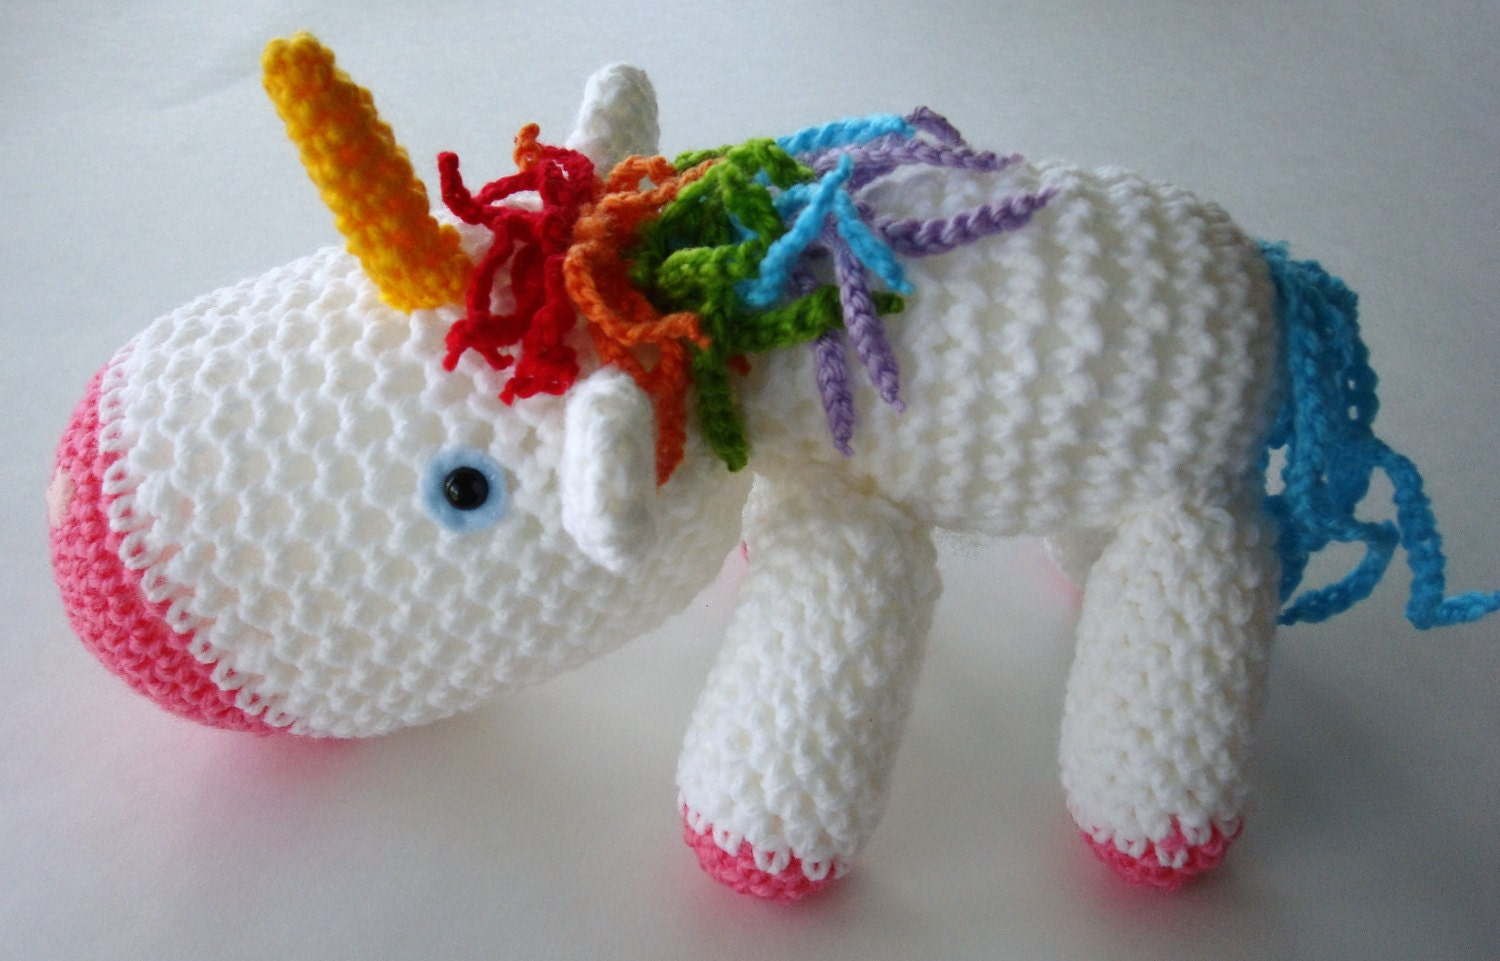 Unicorn Amigurumi Yarn Yard : Crocheted Unicorn Amigurumi Animal White and Pink Unicorn